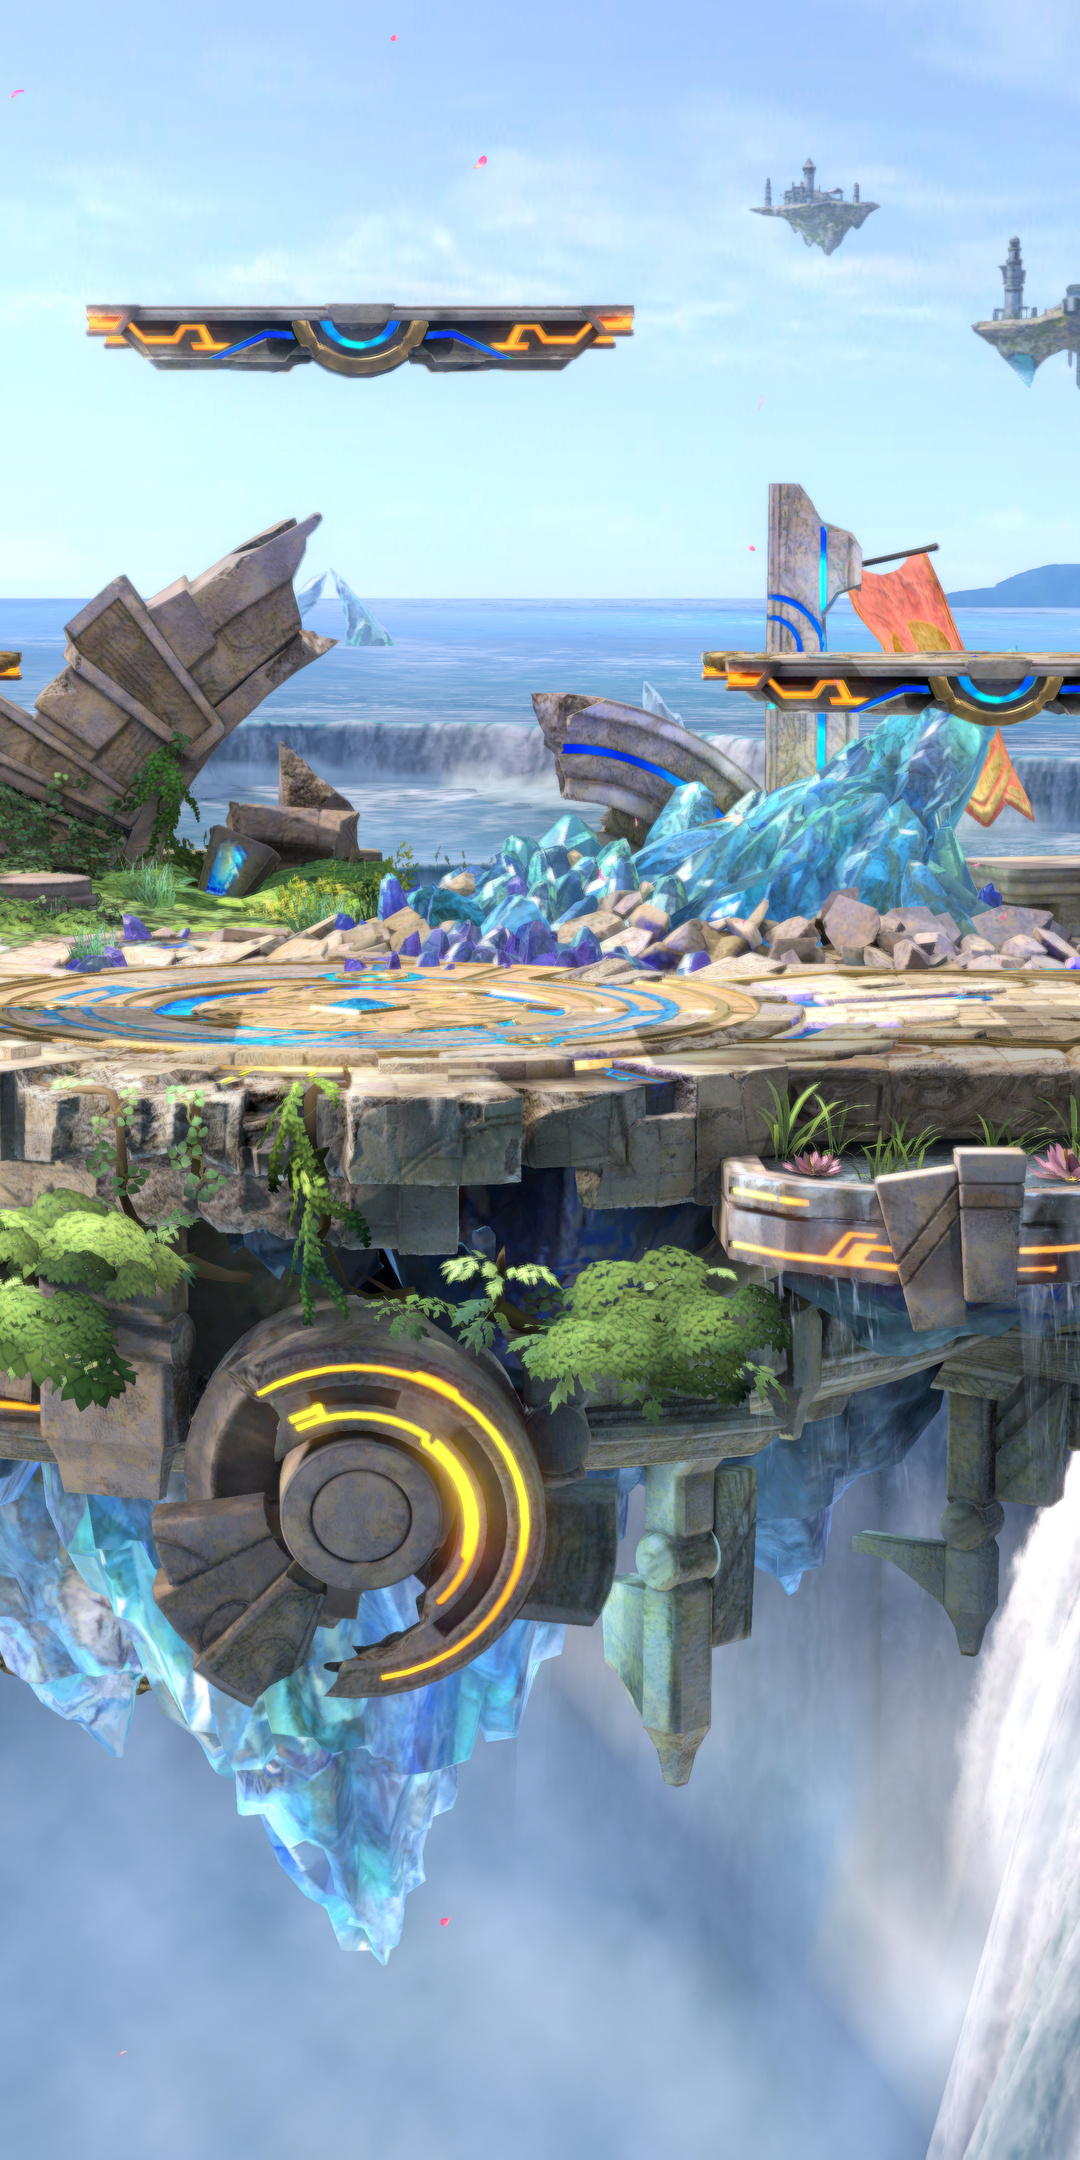 super-smash-bros-ultimate-artwork-5k-xi.jpg